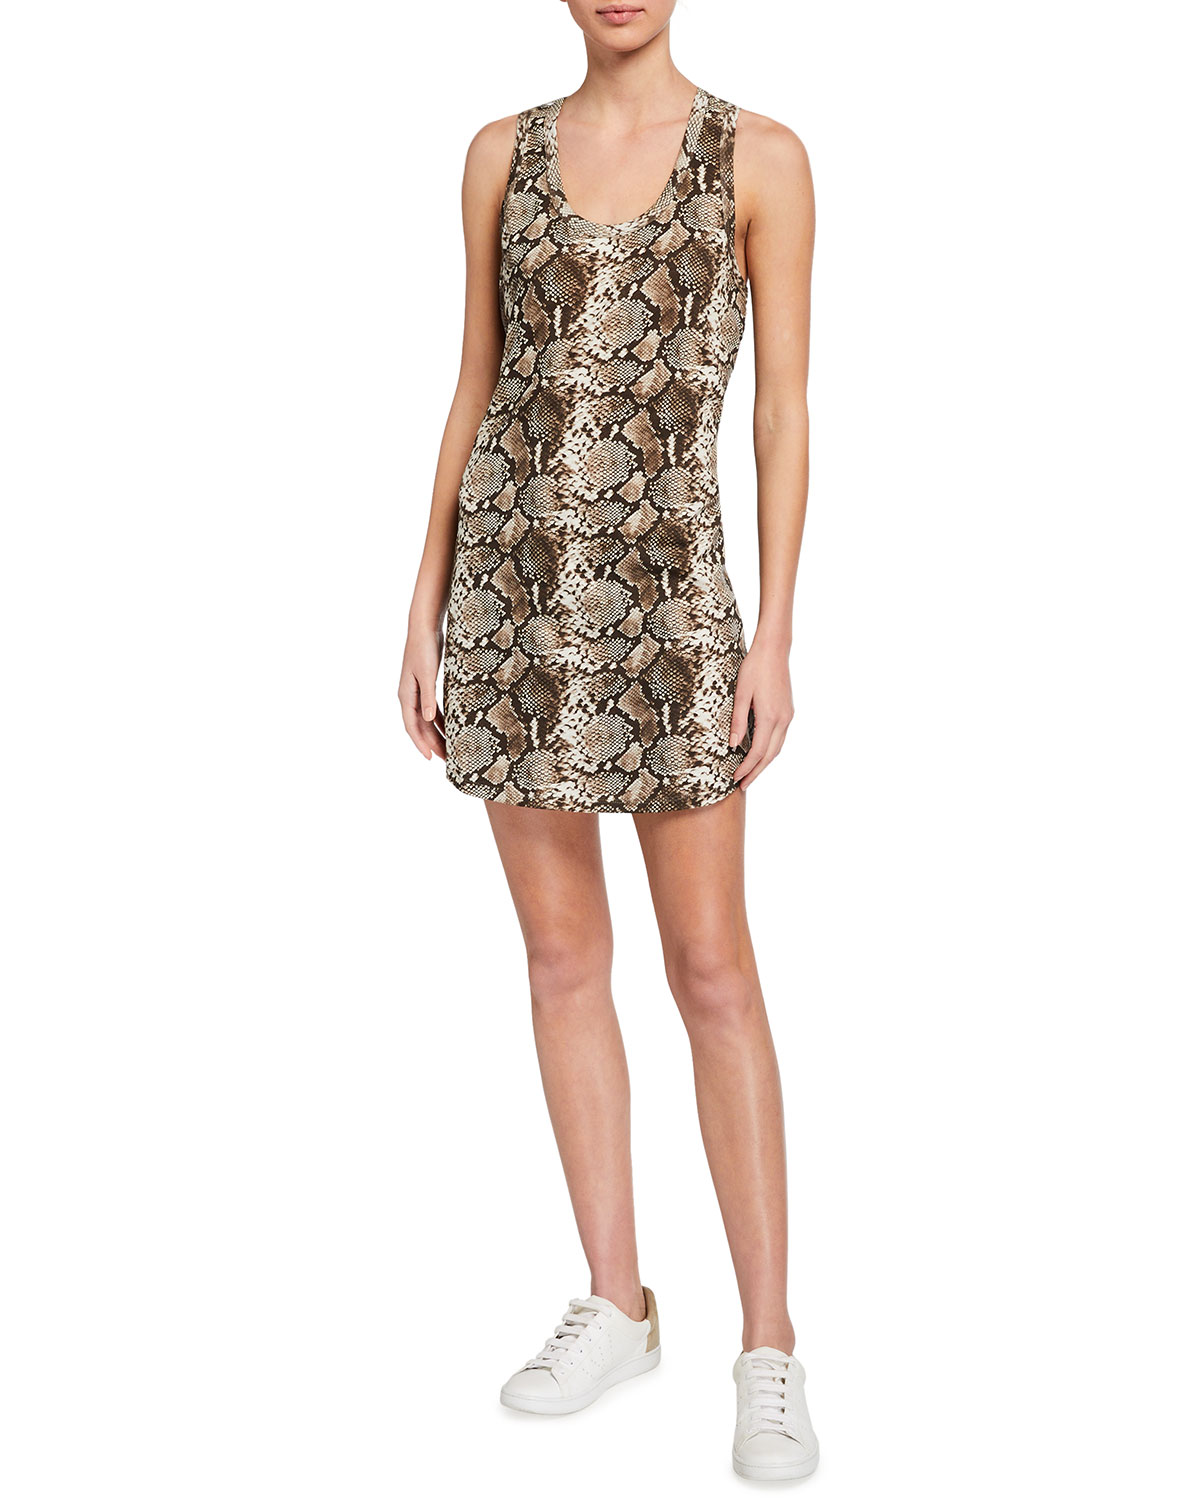 Pam & Gela Snake-Print Tank Dress